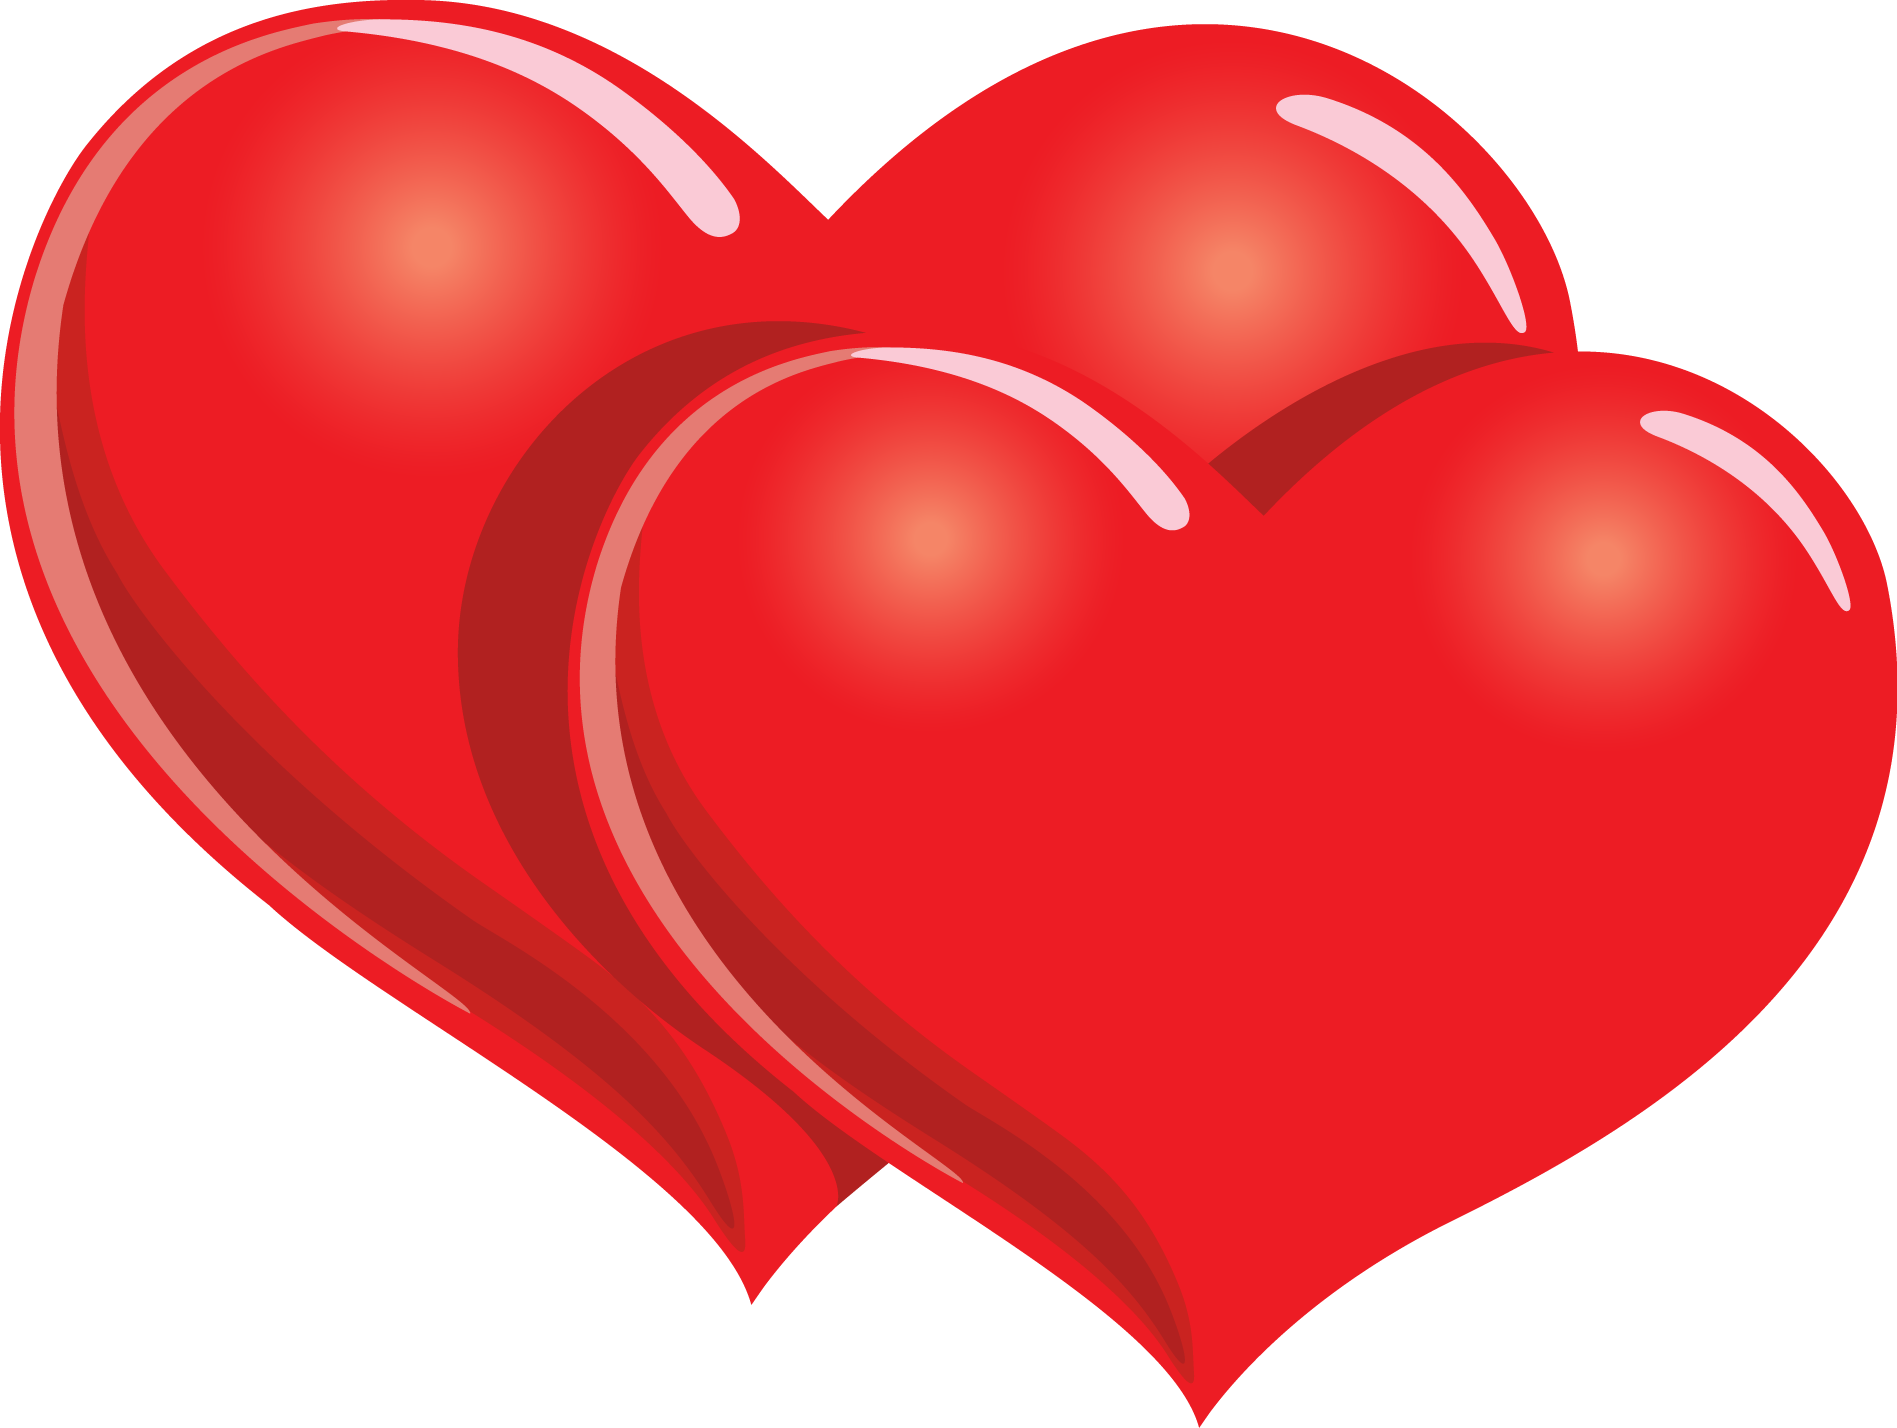 http://www.whorublog.com/wp-content/uploads/2013/02/Two-red-hearts.png